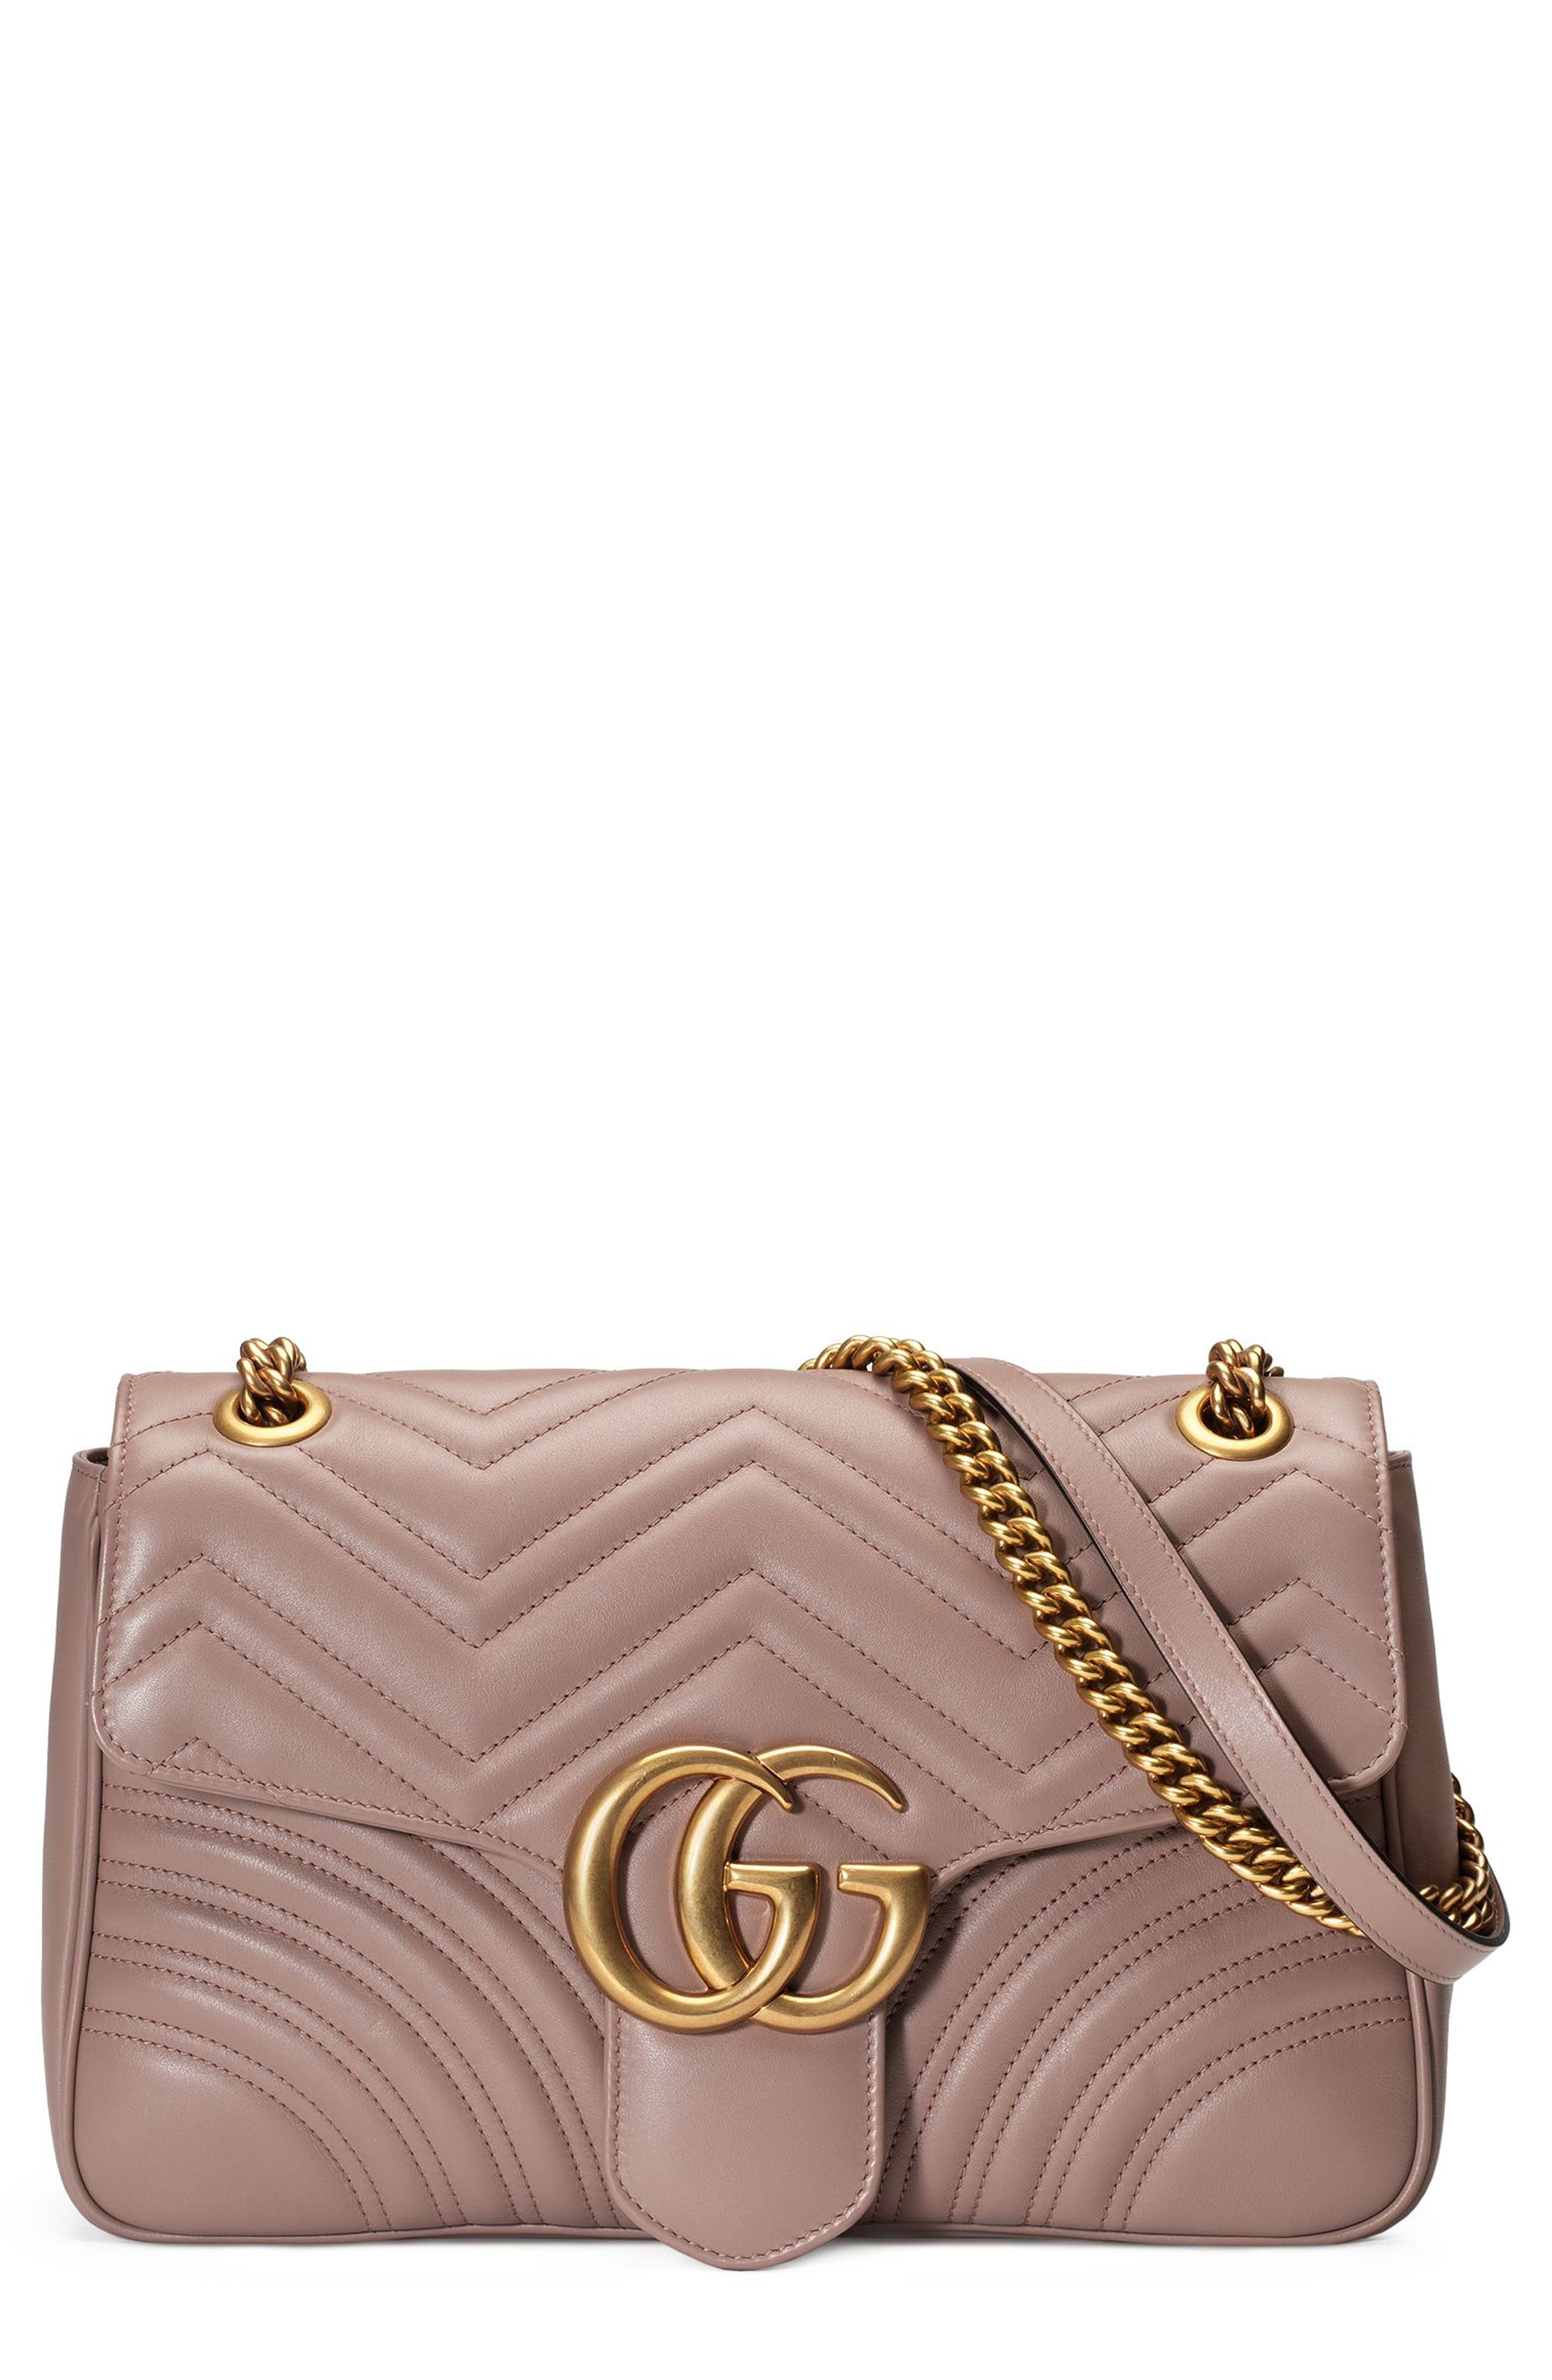 gucci bags at nordstrom. women s crossbody bags nordstrom gucci at